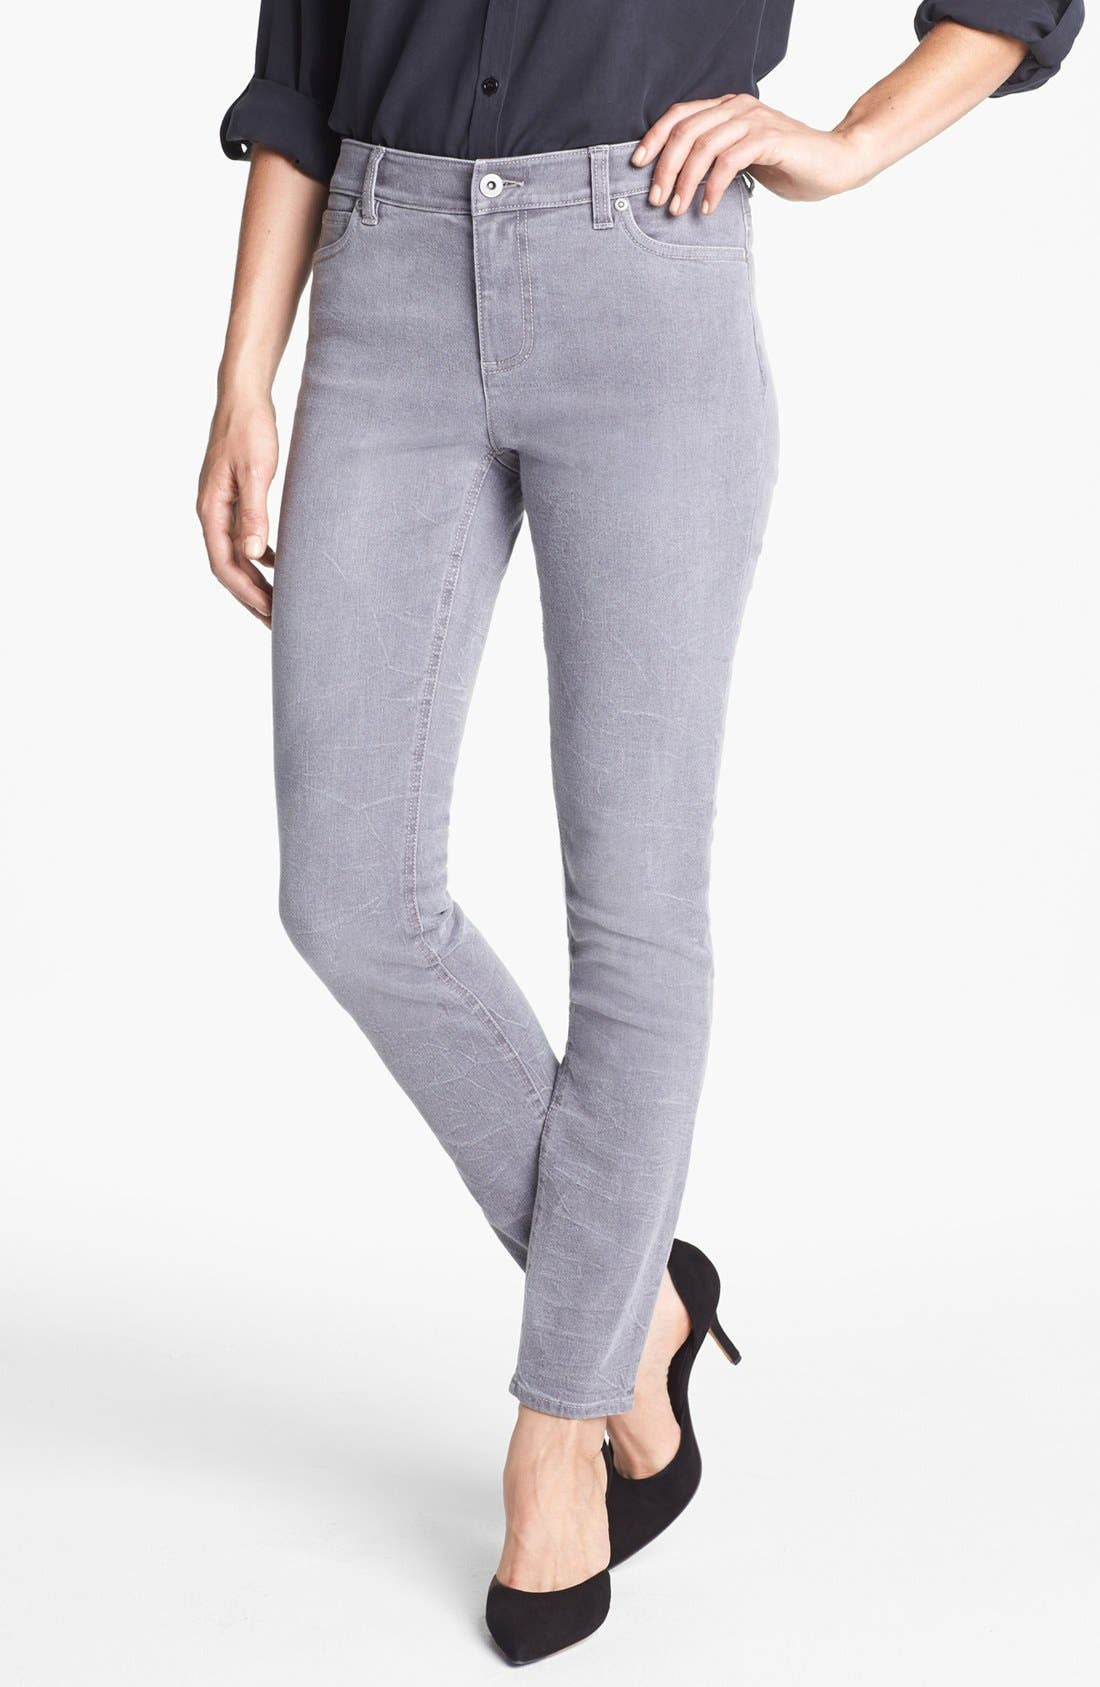 Sand Washed Skinny Jeans,                             Main thumbnail 1, color,                             085